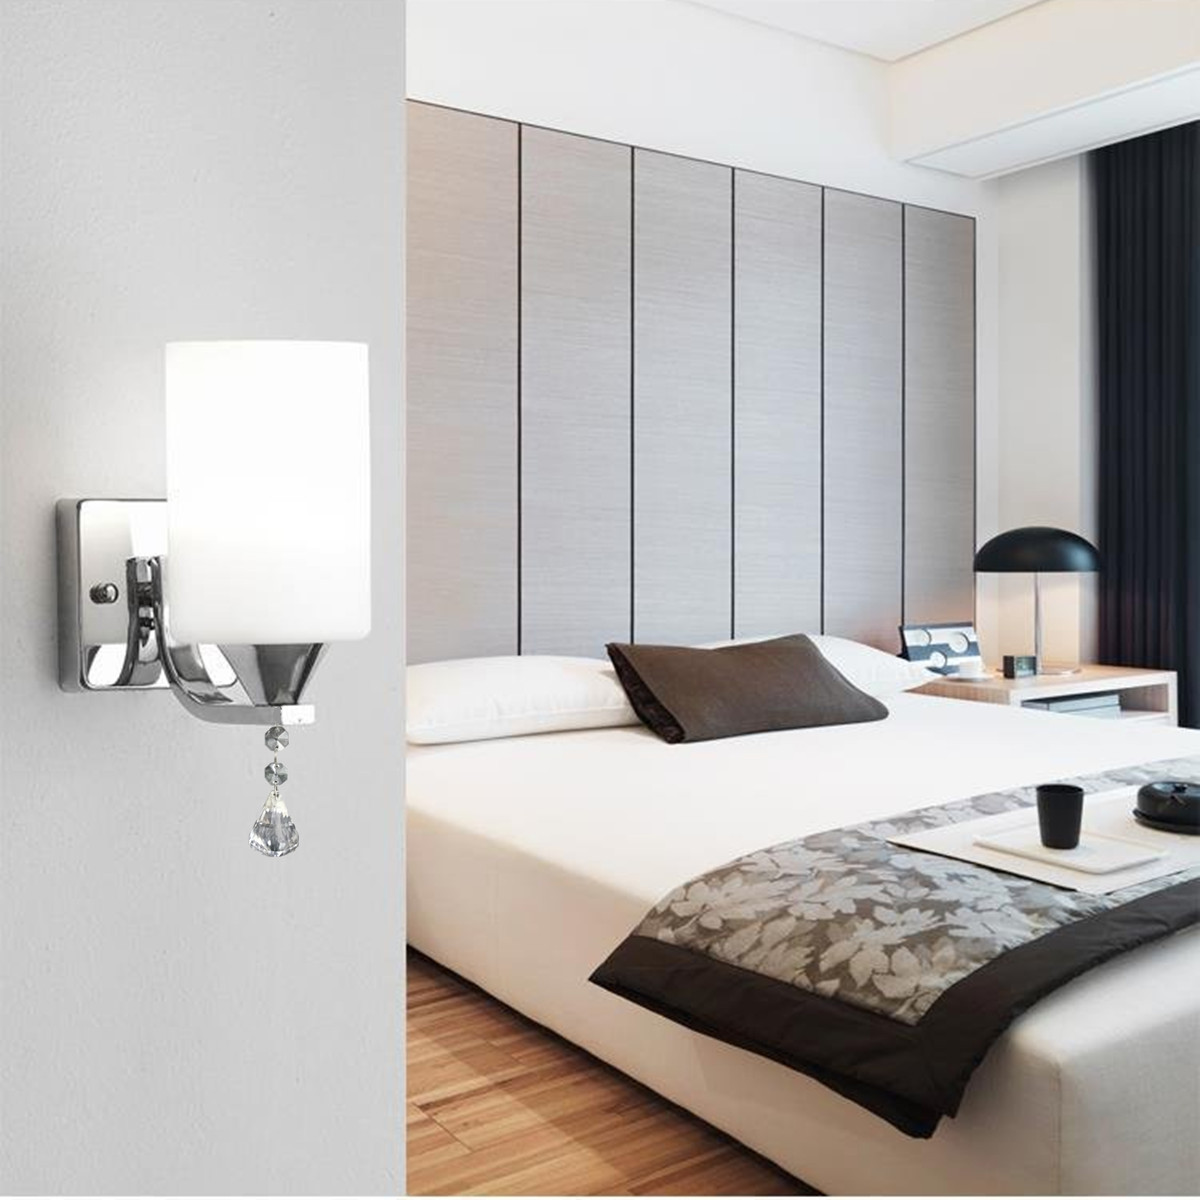 E27 220V LED Wall Light Head Of Bed Wall Lamp Home Decor Lamp Modern And Fashion Design Easy Installation